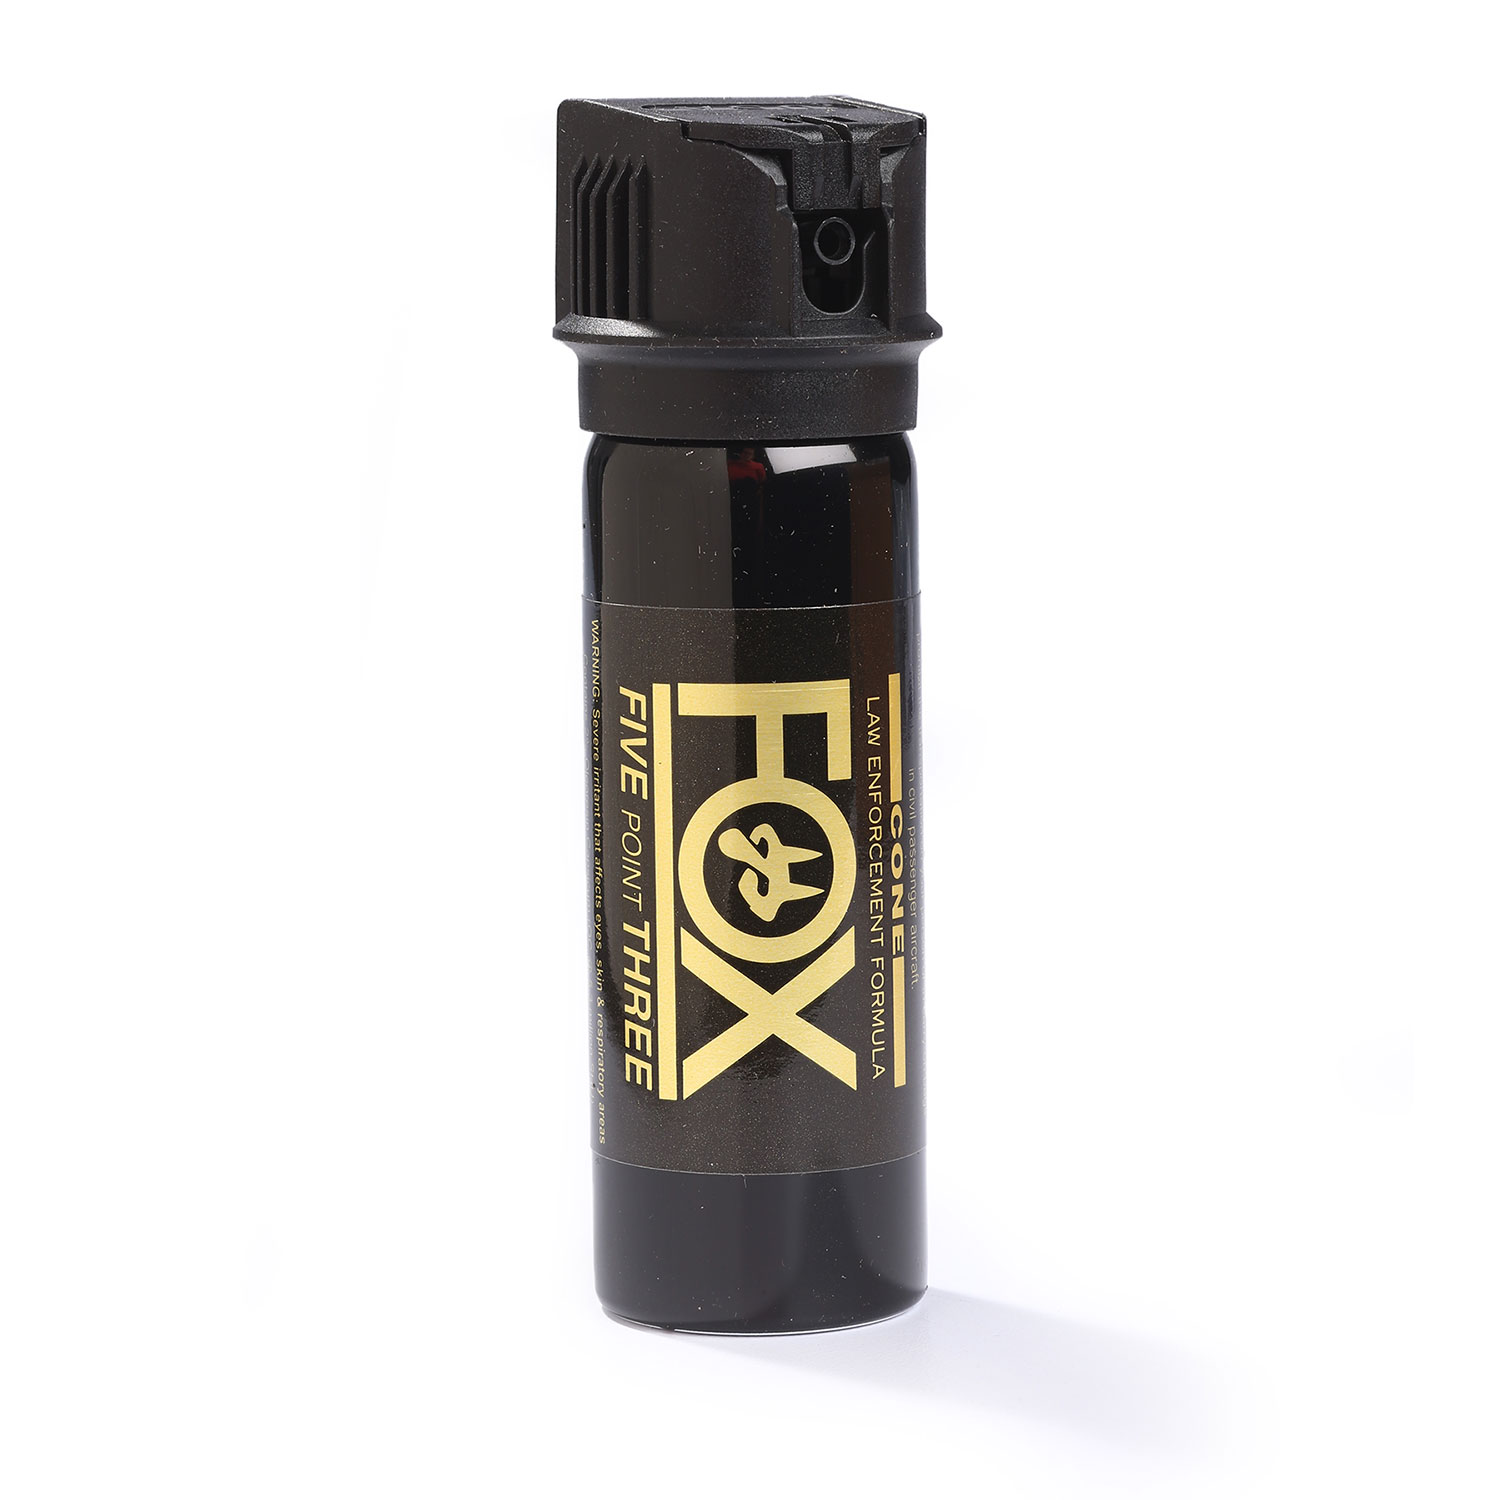 Fox Flip-Top Dispenser Mark 4 Cone Fog Defense Spray